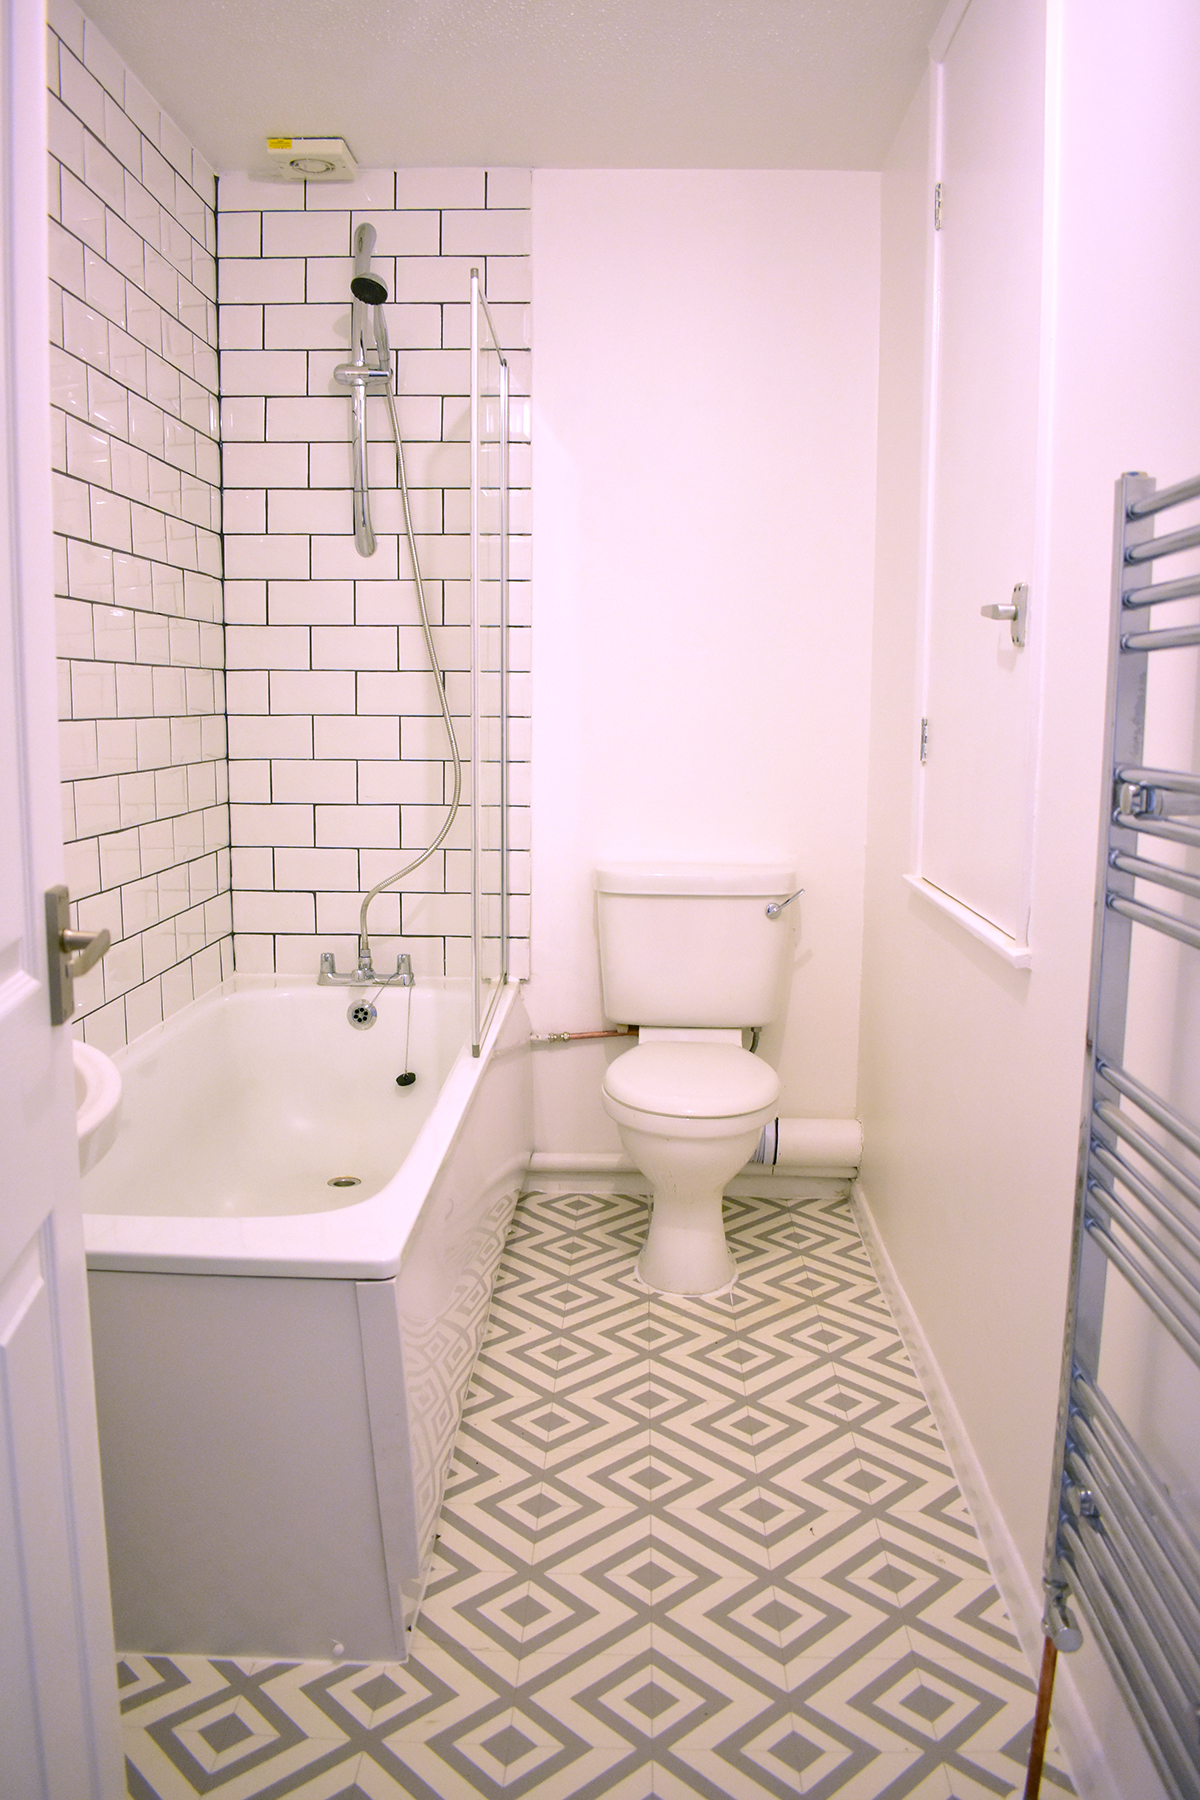 New tiles,vinyl flooring, and white paint made a world of difference in the bathroom